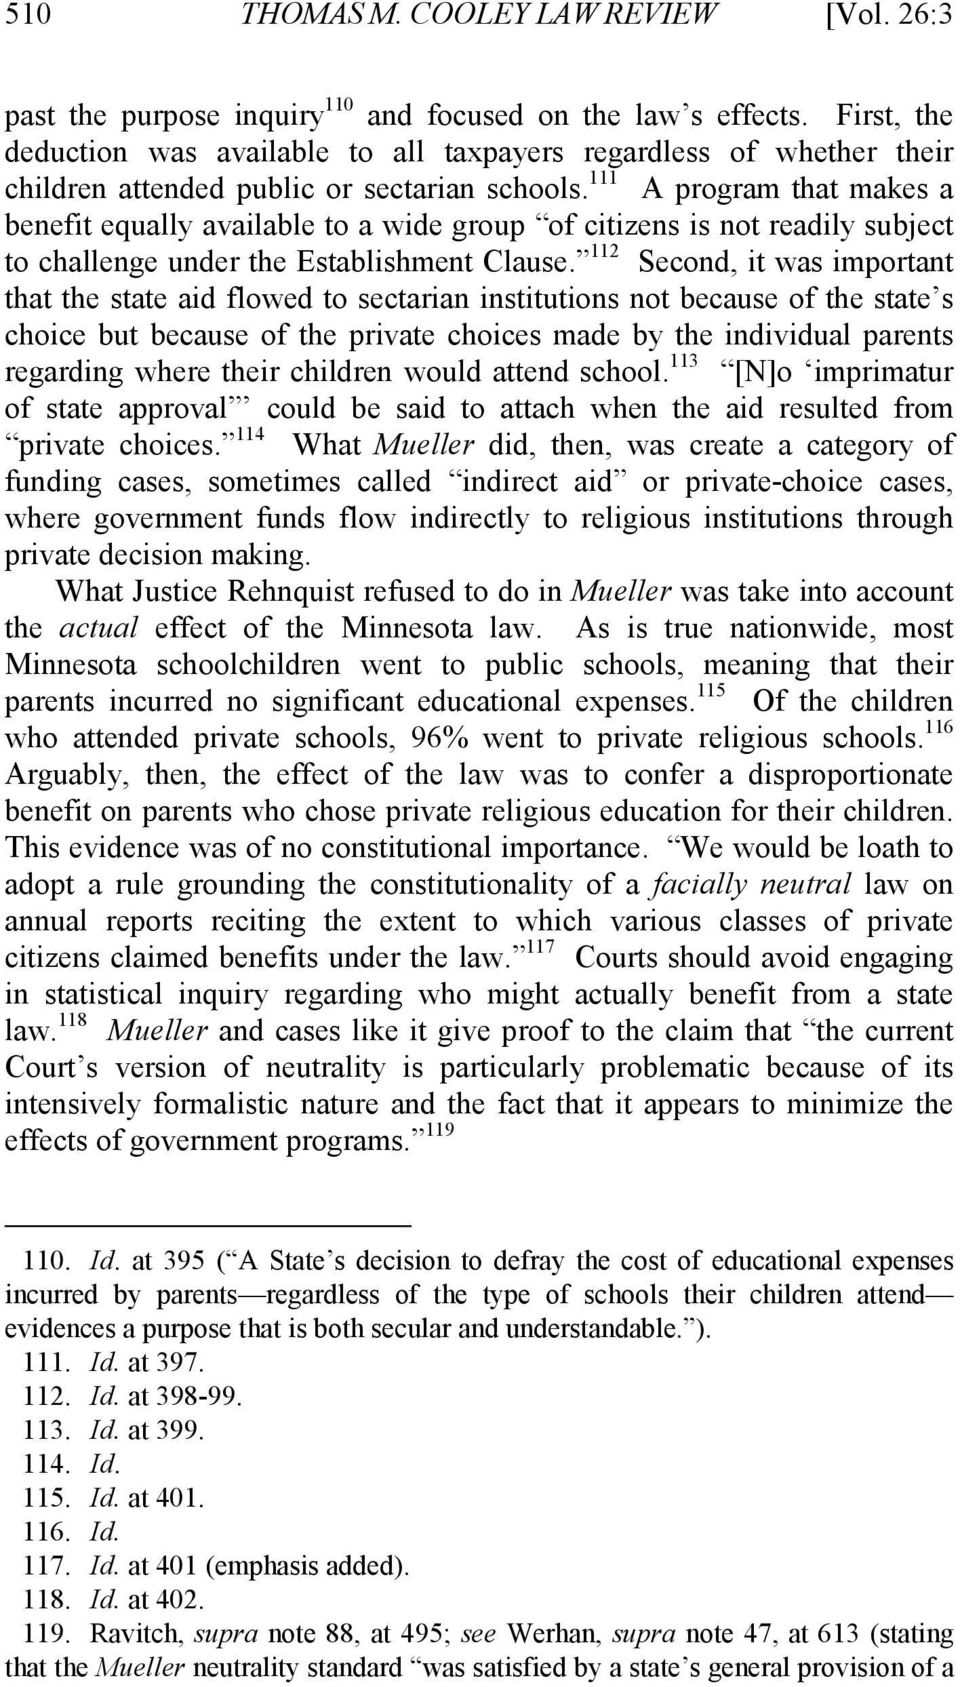 111 A program that makes a benefit equally available to a wide group of citizens is not readily subject to challenge under the Establishment Clause.